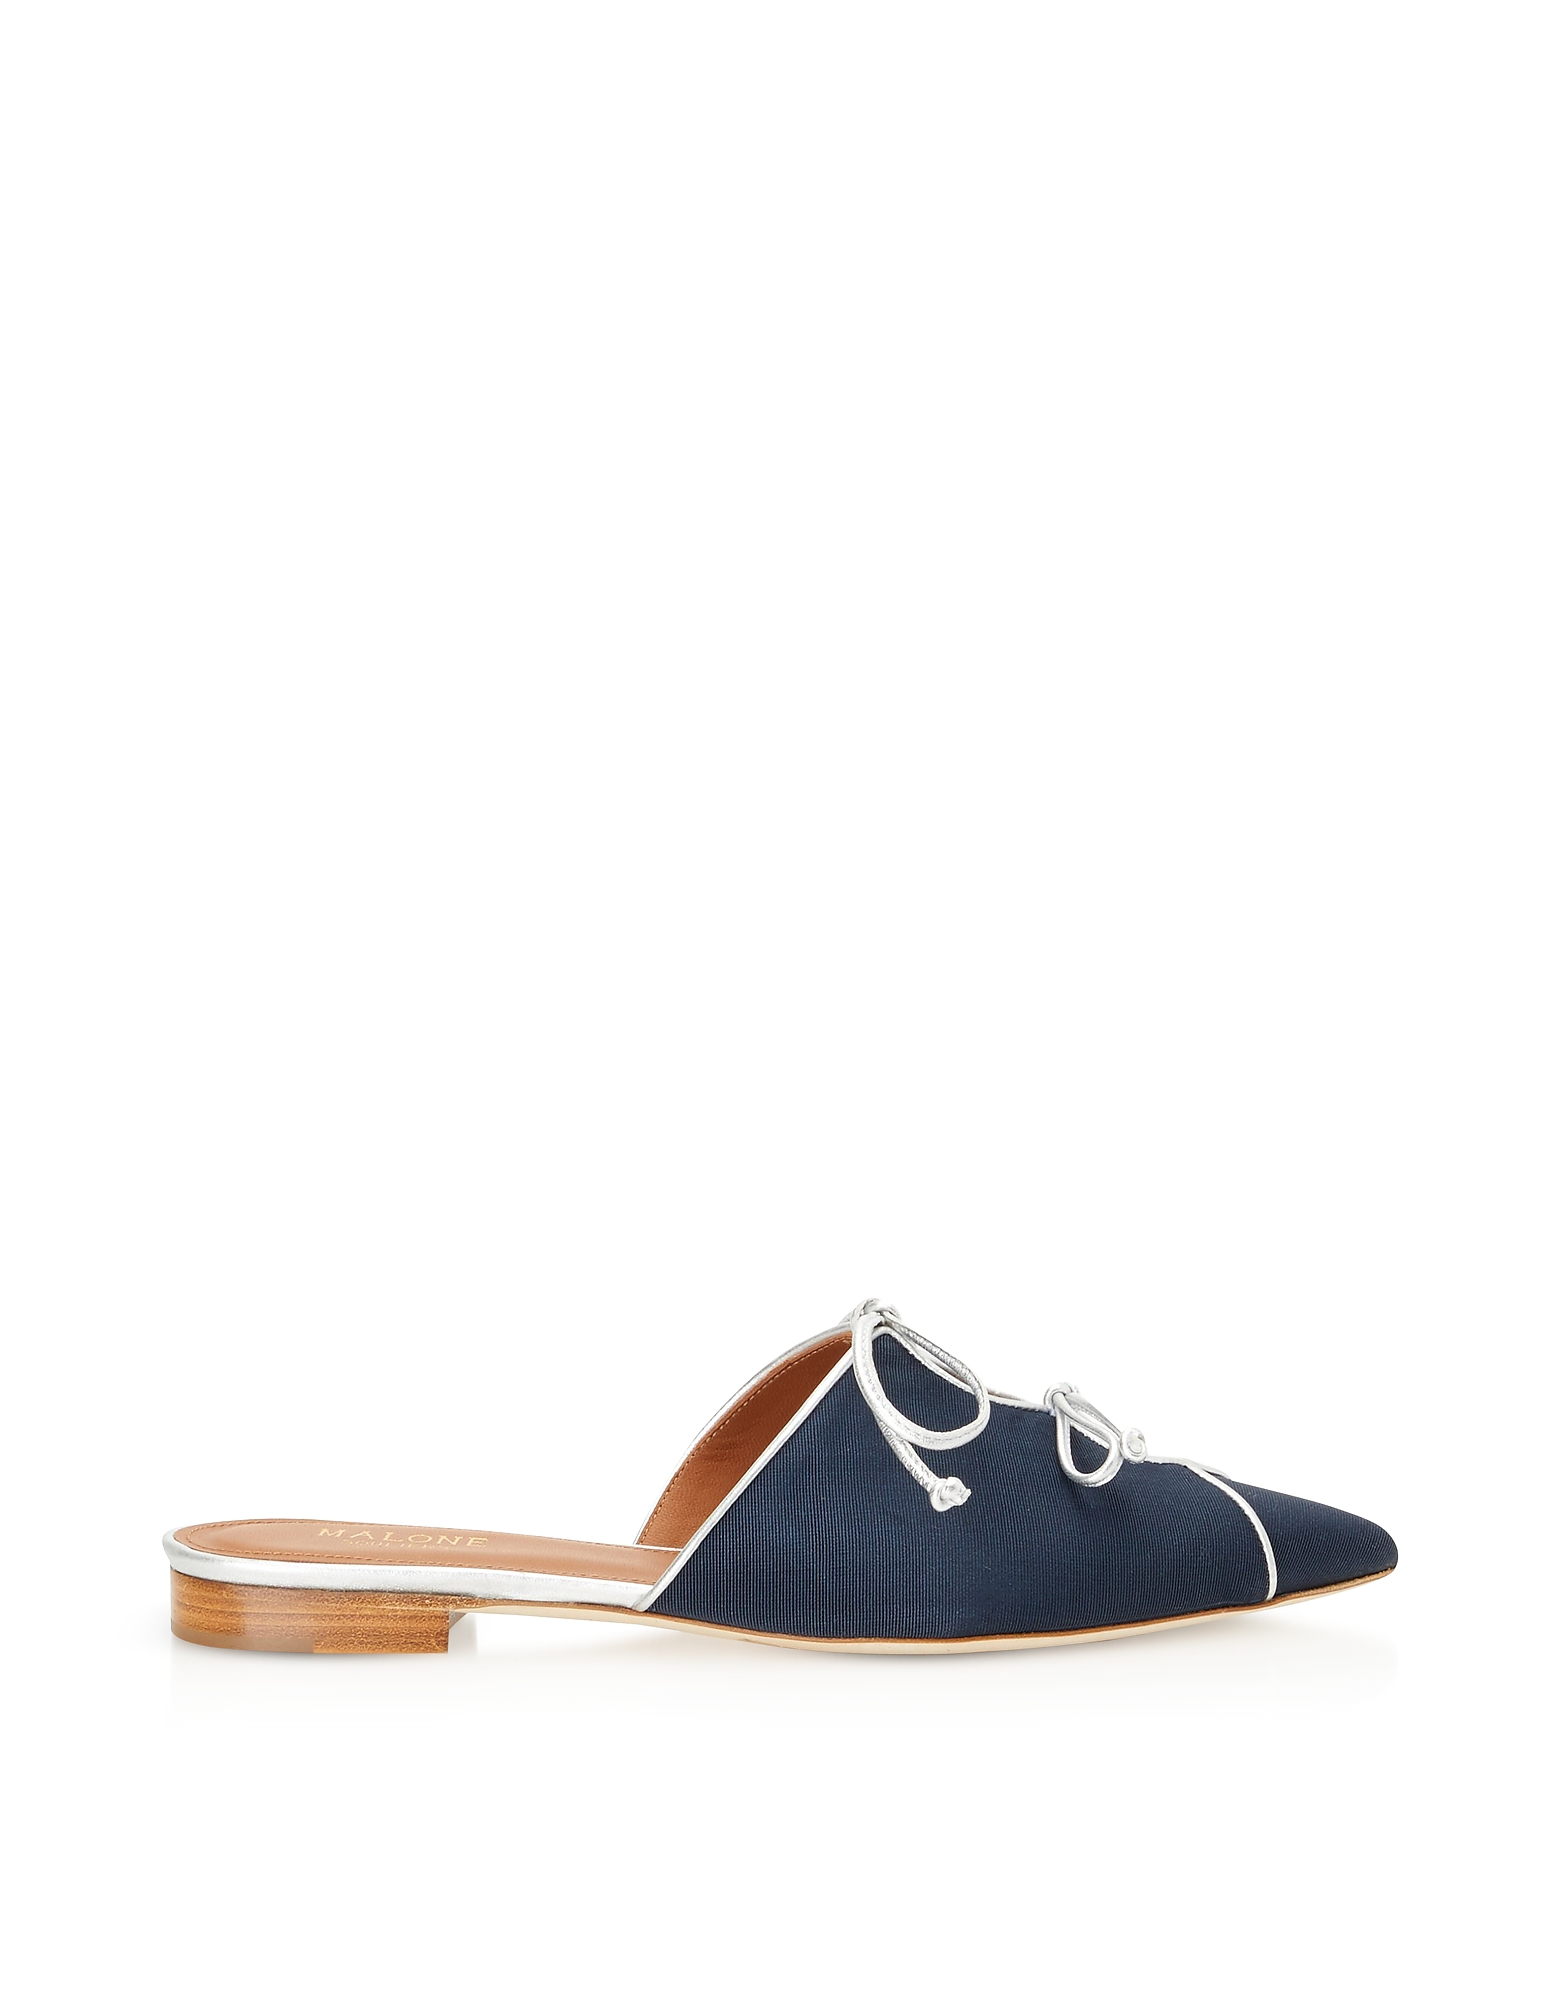 Malone Souliers Shoes, Vilvin Navy Blue Moire Fabric and Silver Metallic Nappa Leather Flat Mules